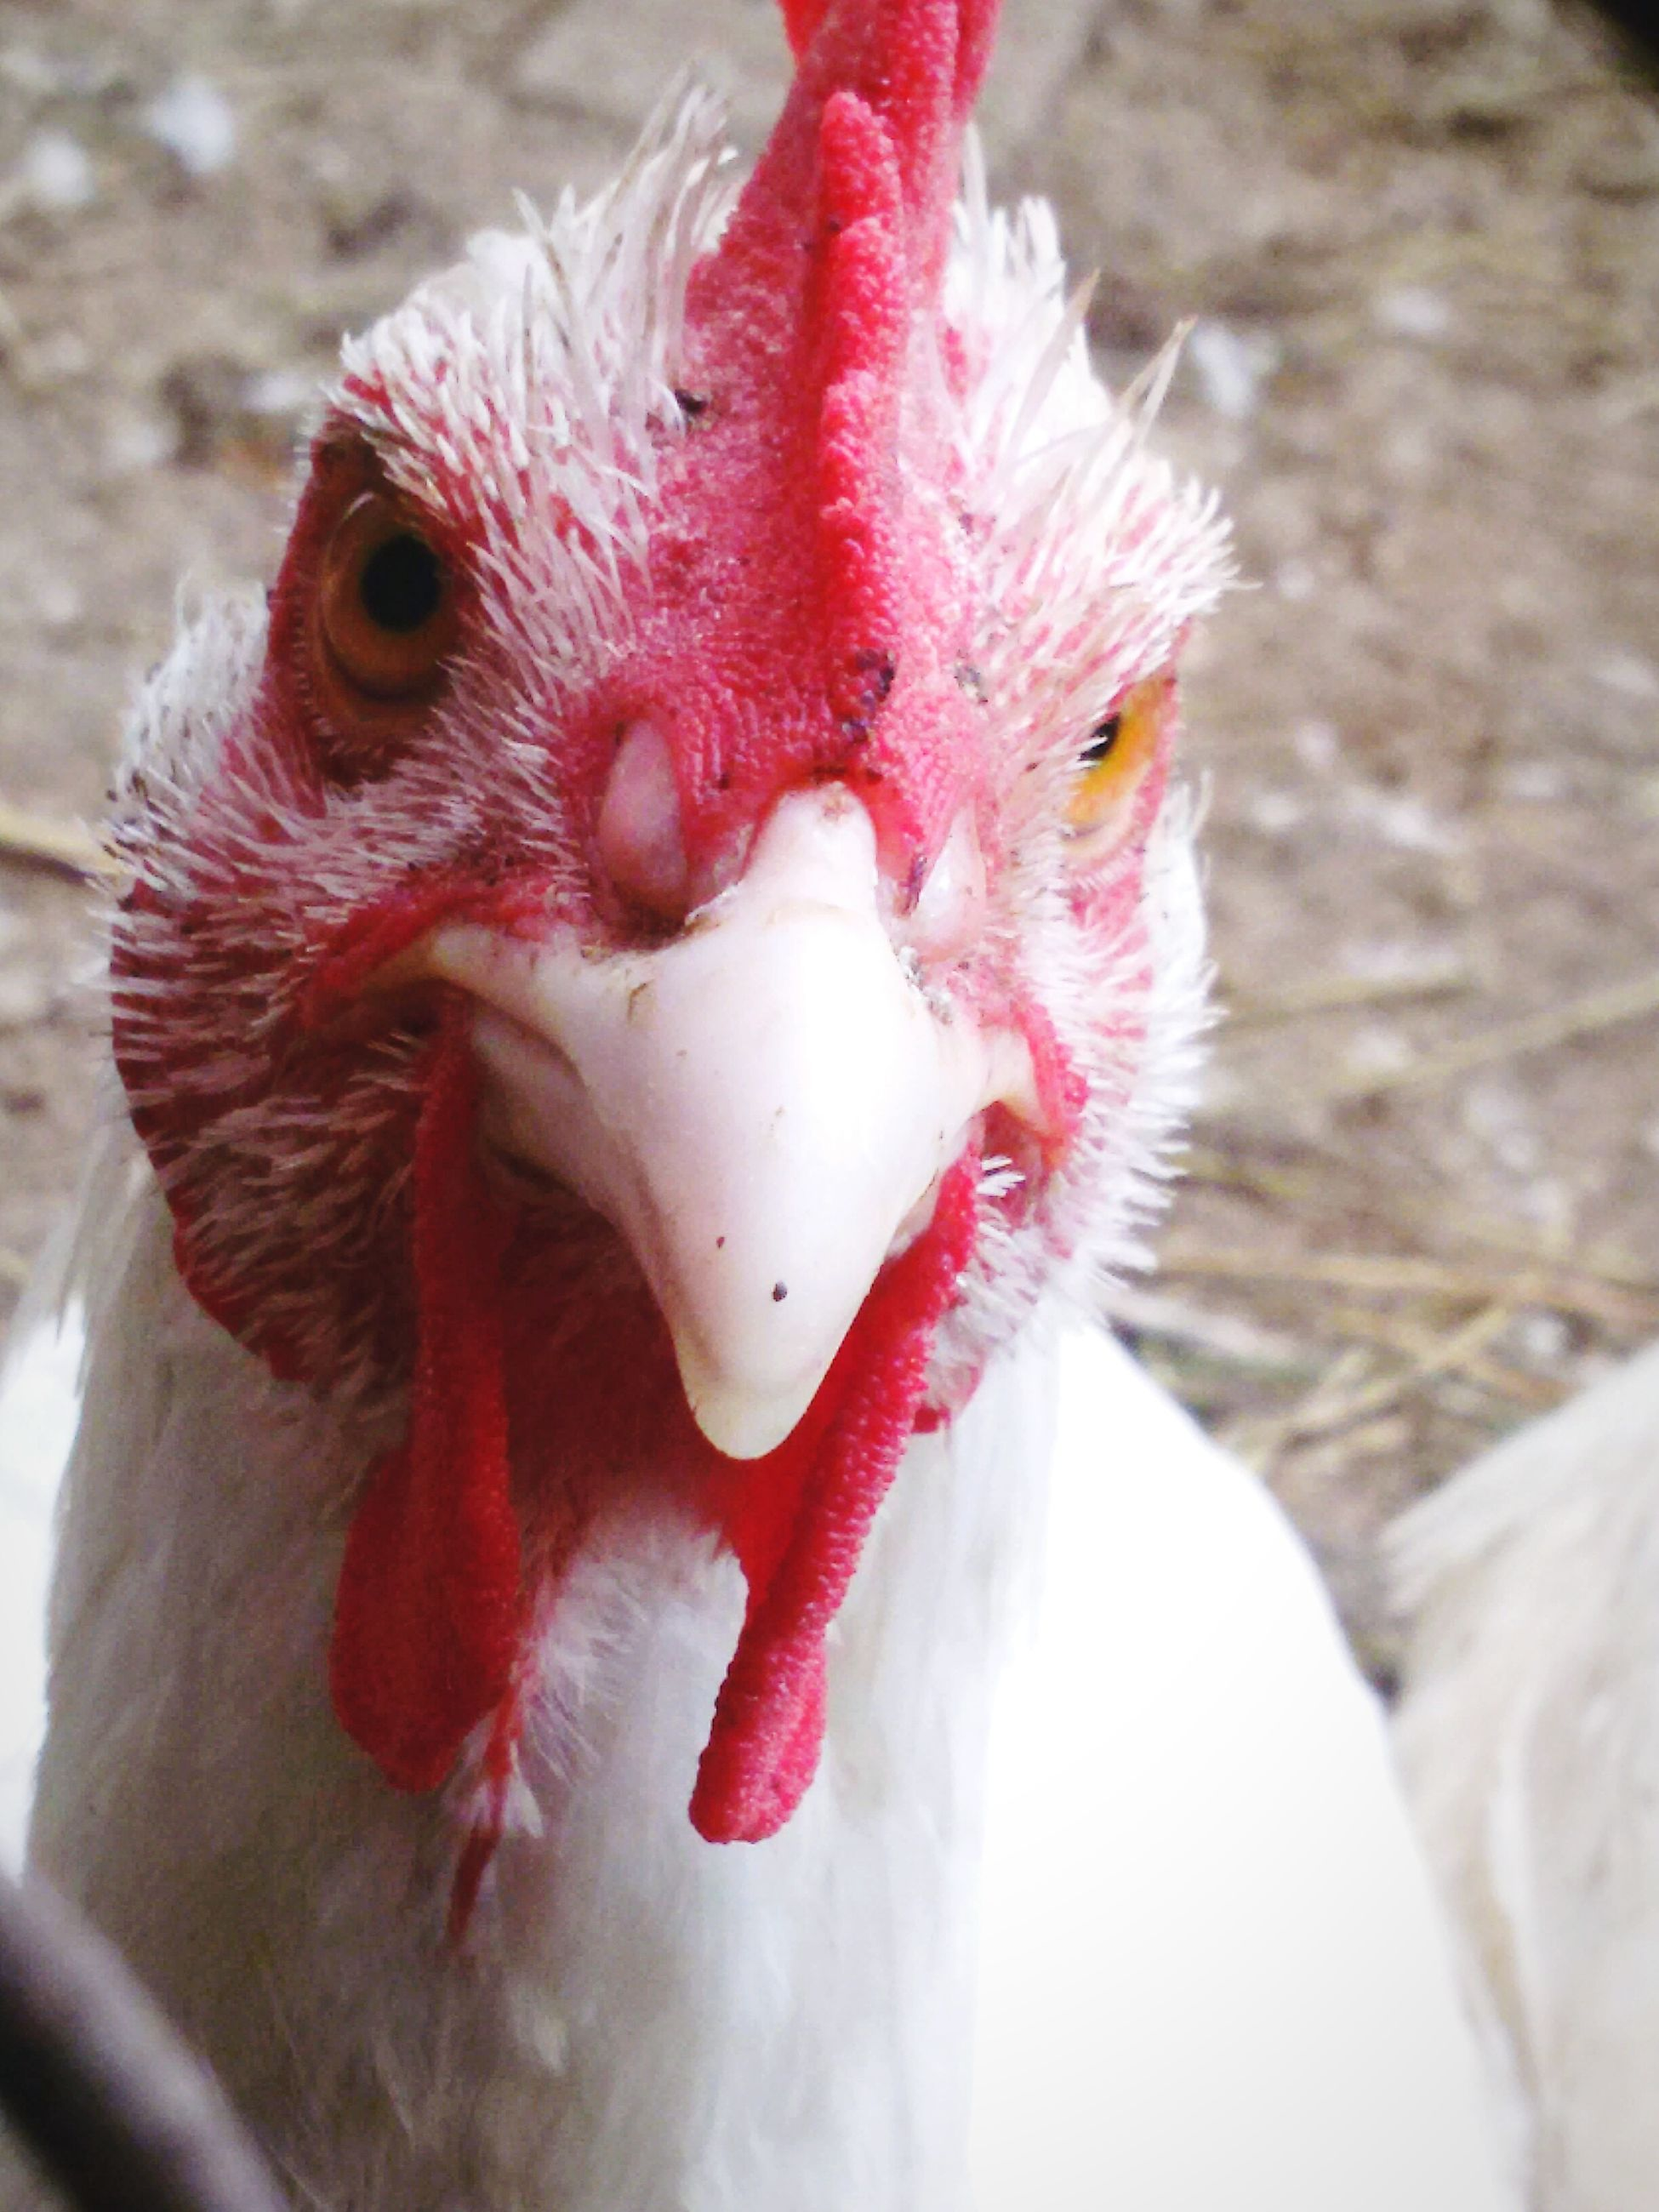 animal themes, one animal, close-up, animals in the wild, wildlife, focus on foreground, animal head, livestock, red, bird, animal body part, domestic animals, beak, chicken - bird, nature, day, outdoors, zoology, no people, cold temperature